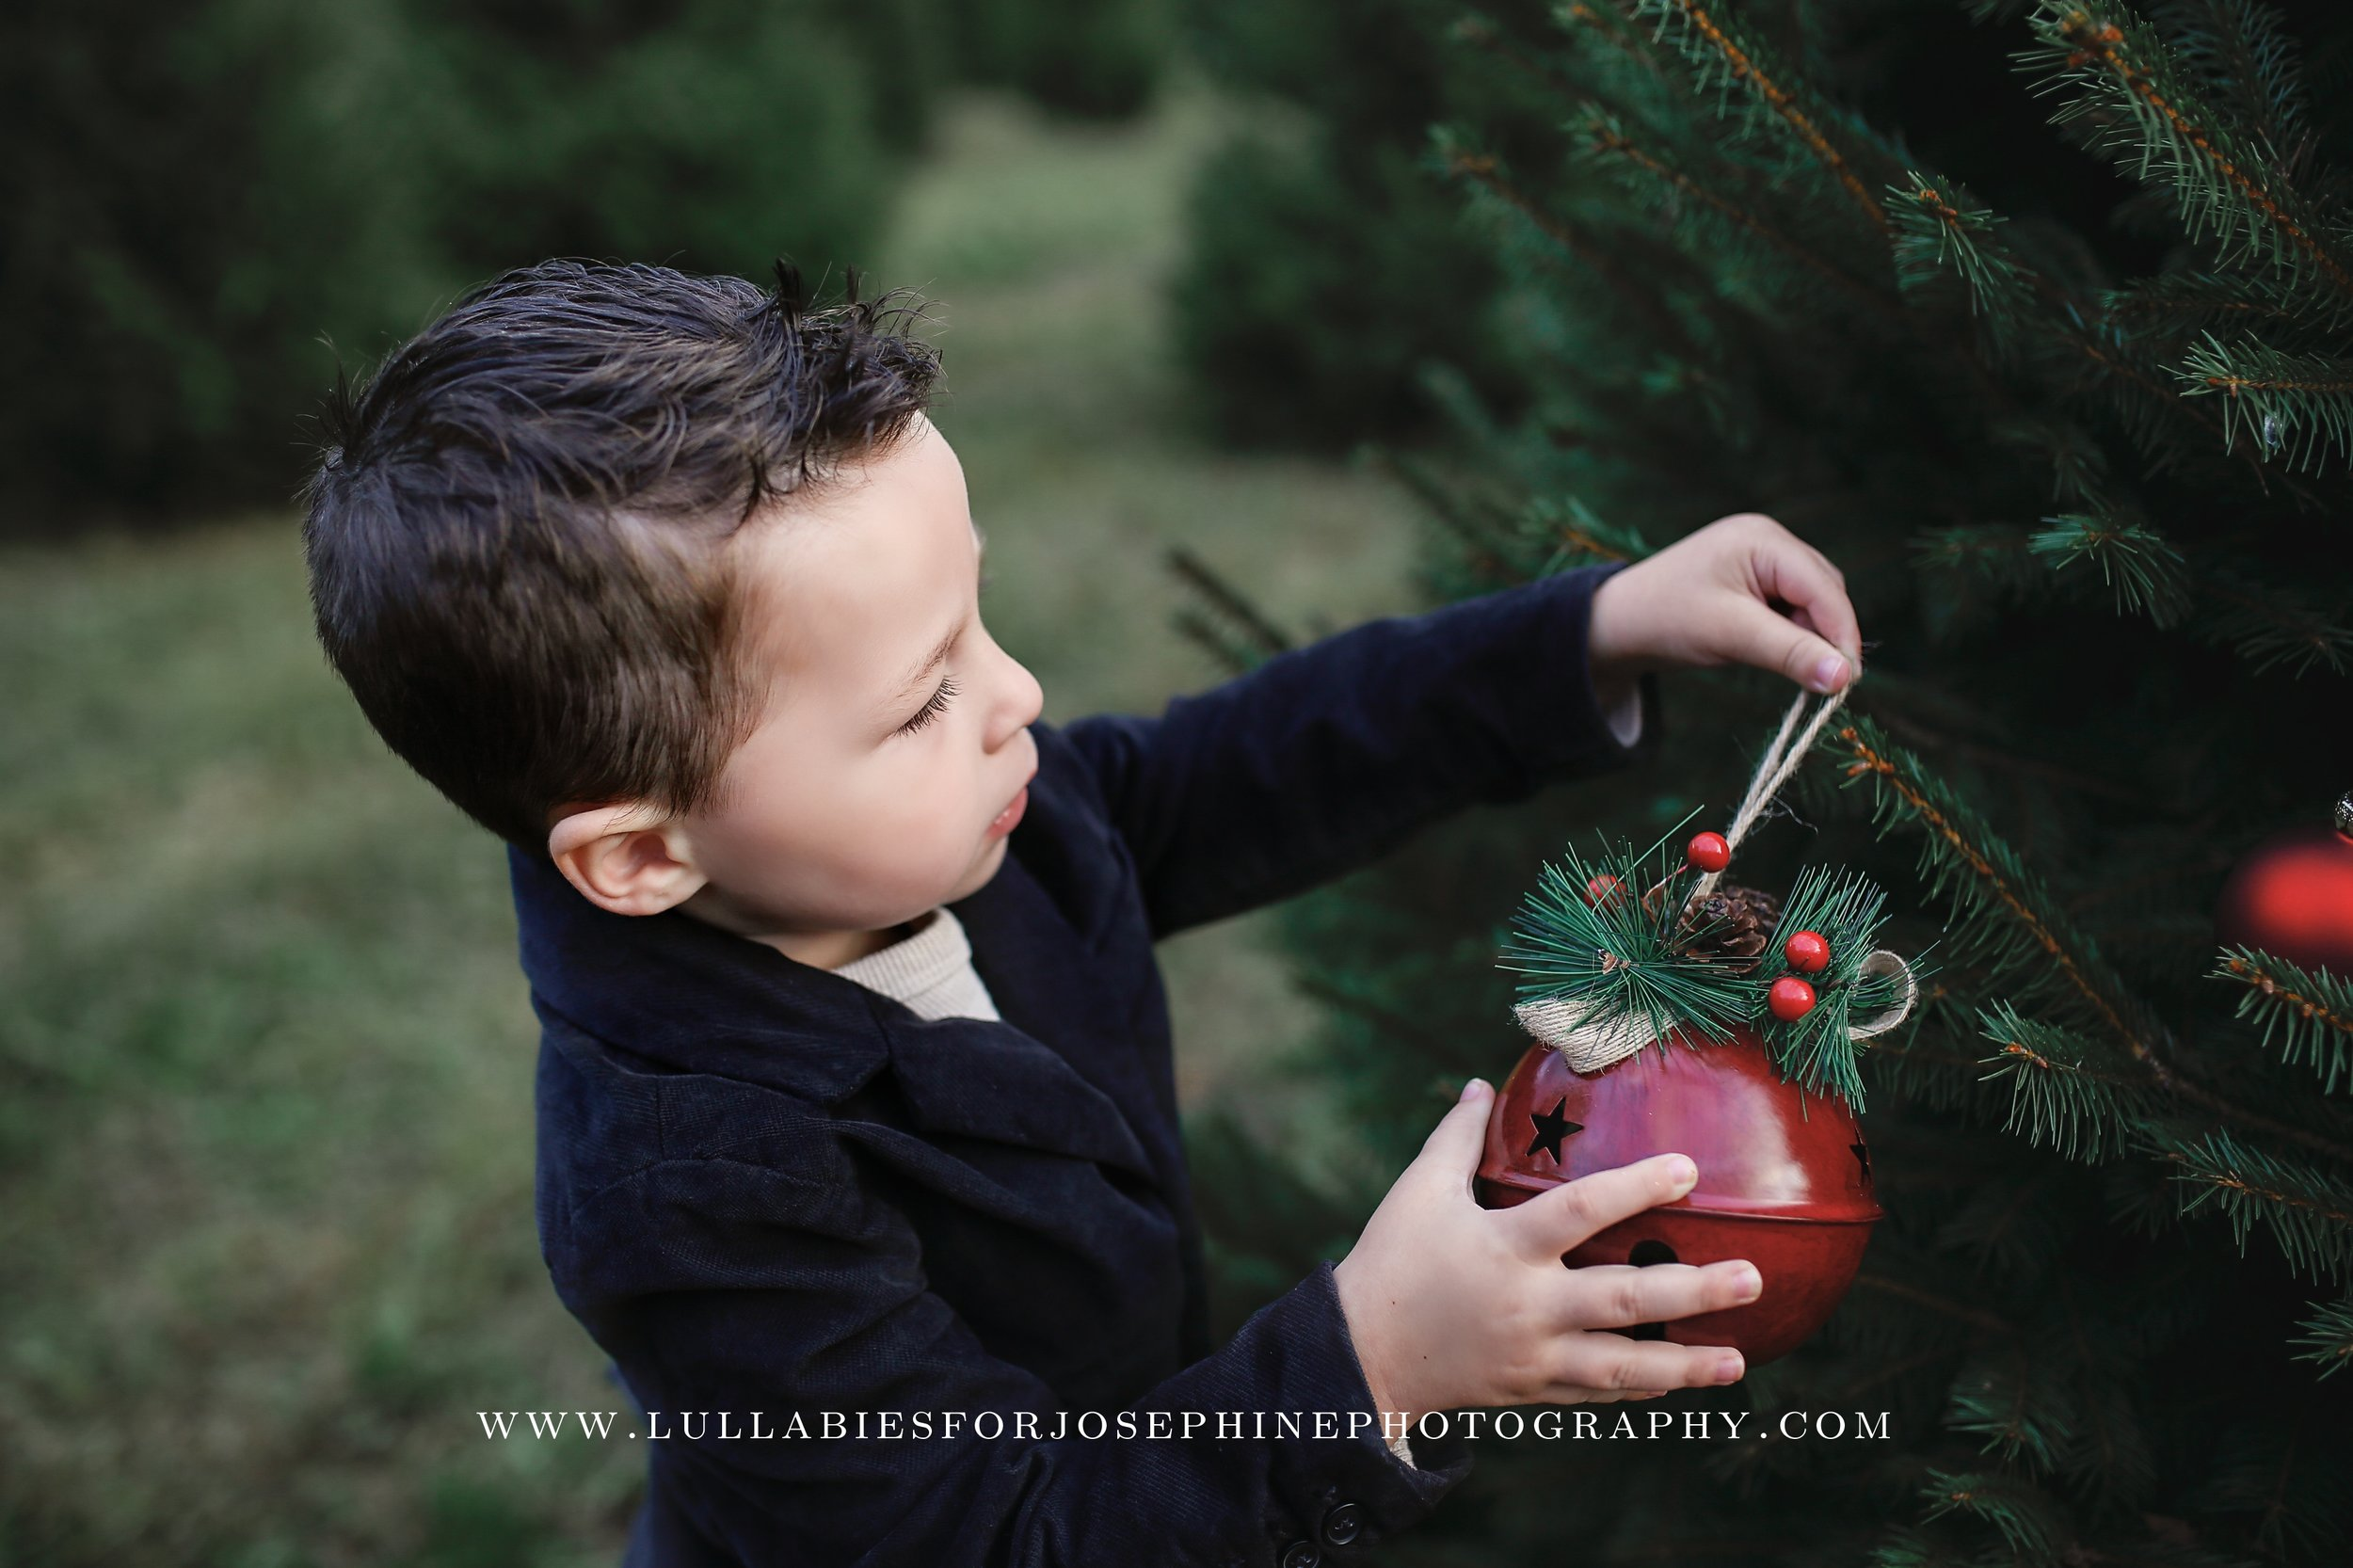 NJ-family-photographer-baby-mom-sunset-tree-farm-christmas-love-laugh